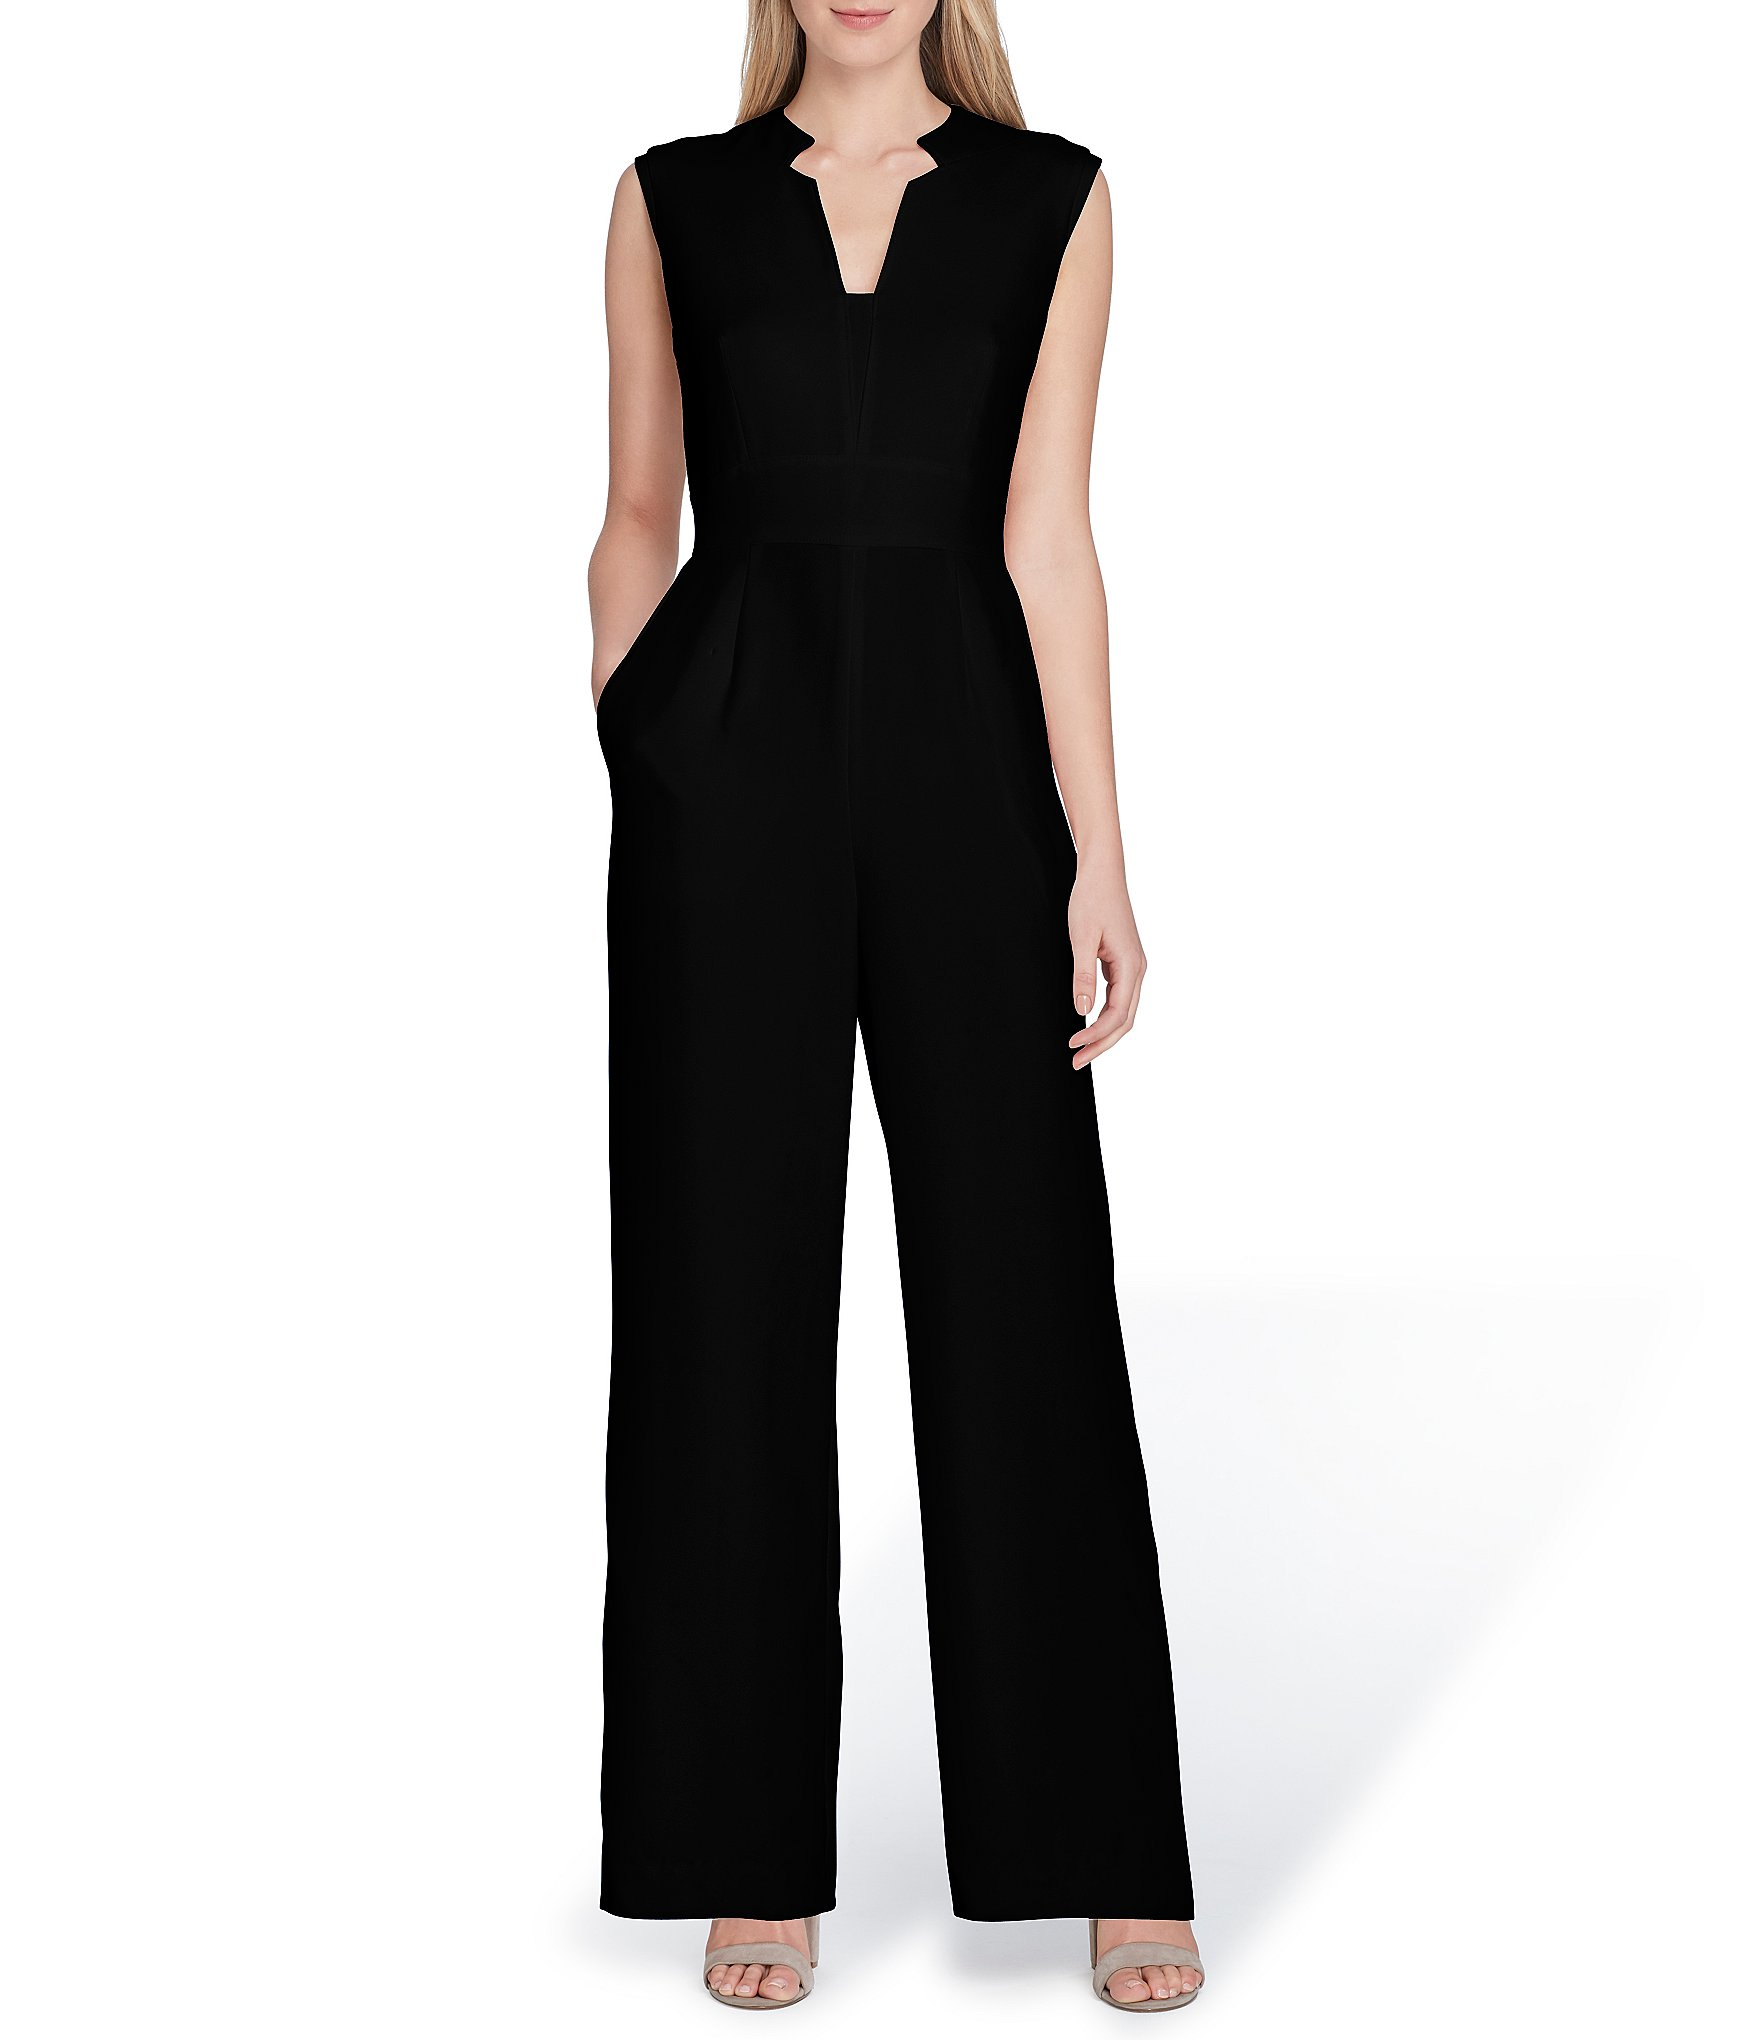 365b398f06c Tahari by ASL Raised Collar Sleeveless Solid Crepe Jumpsuit